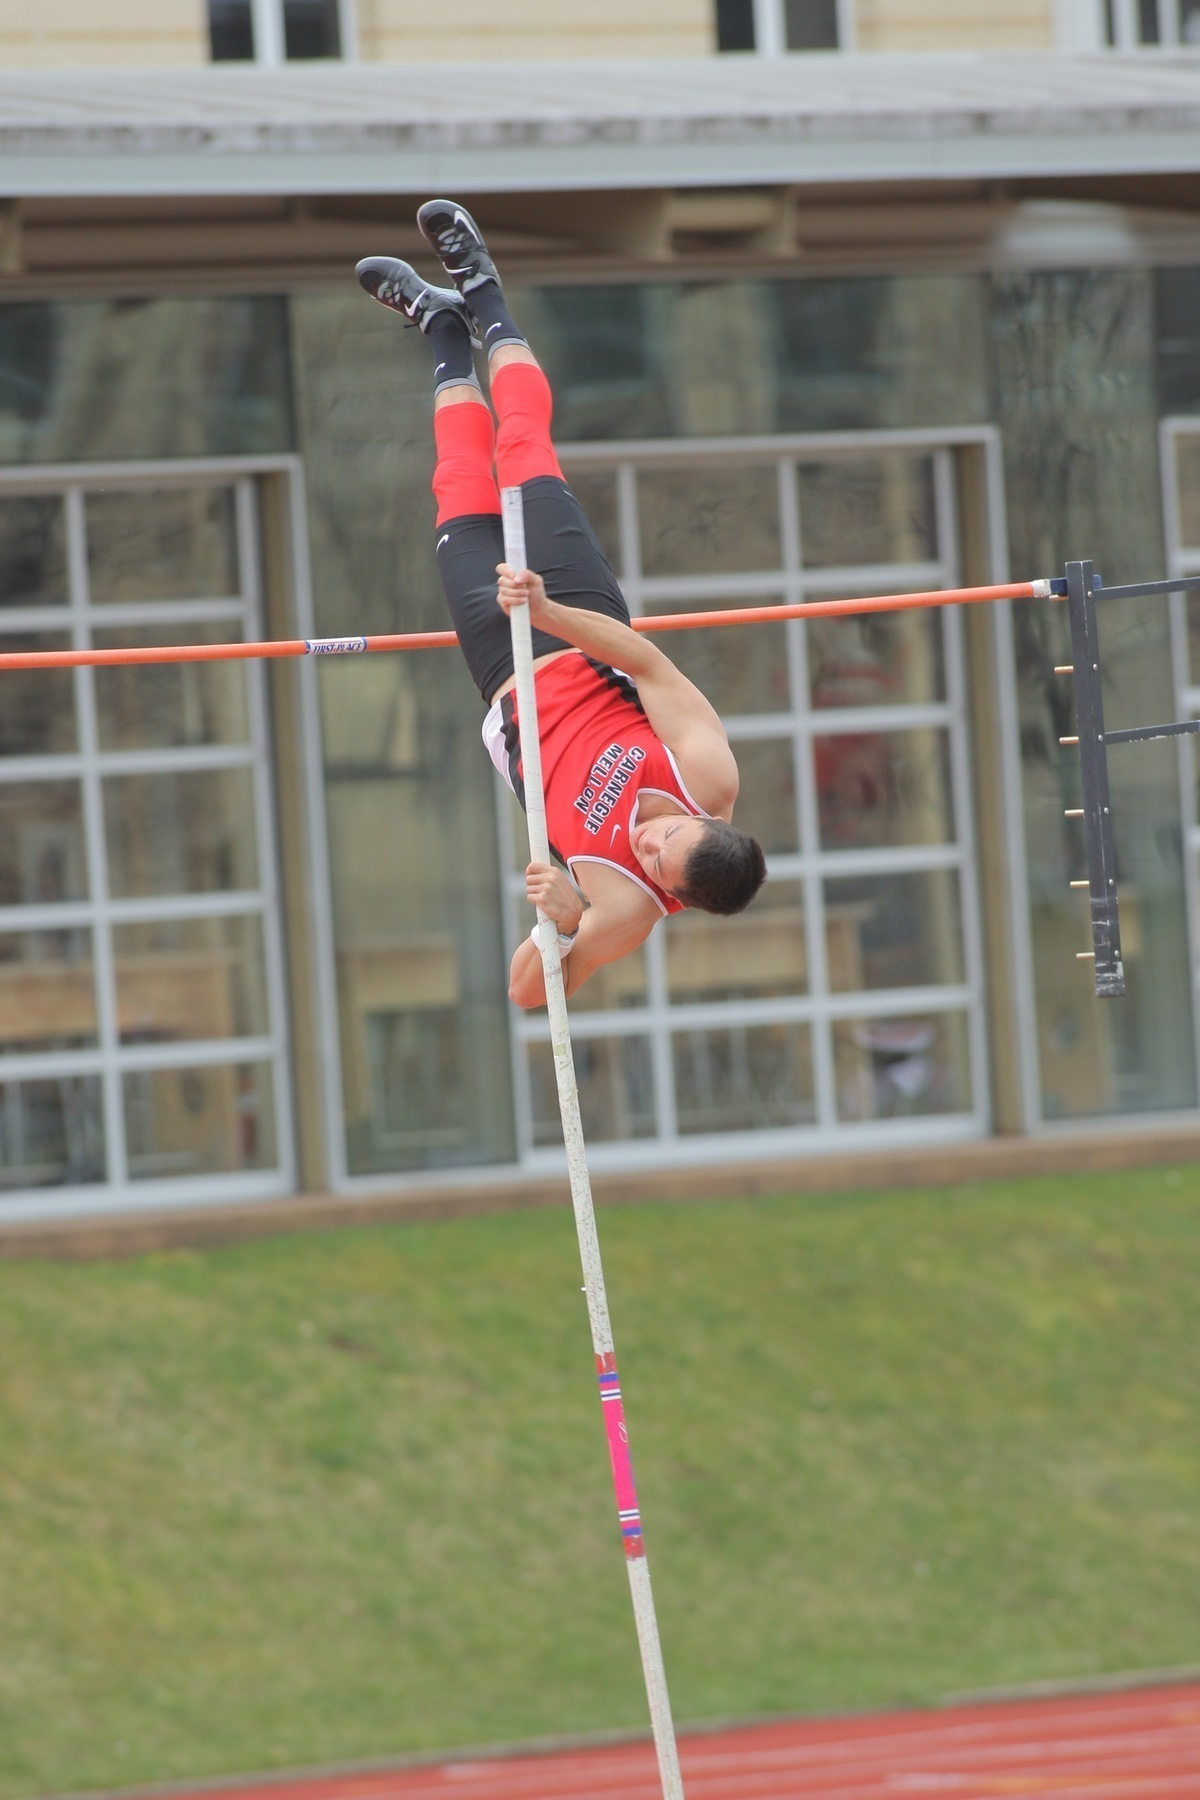 Junior Thomas Mansfield pole vaults to a 4.20 meter mark, helping the Tartans earn first place on Saturday. (credit: CMU Athletics)